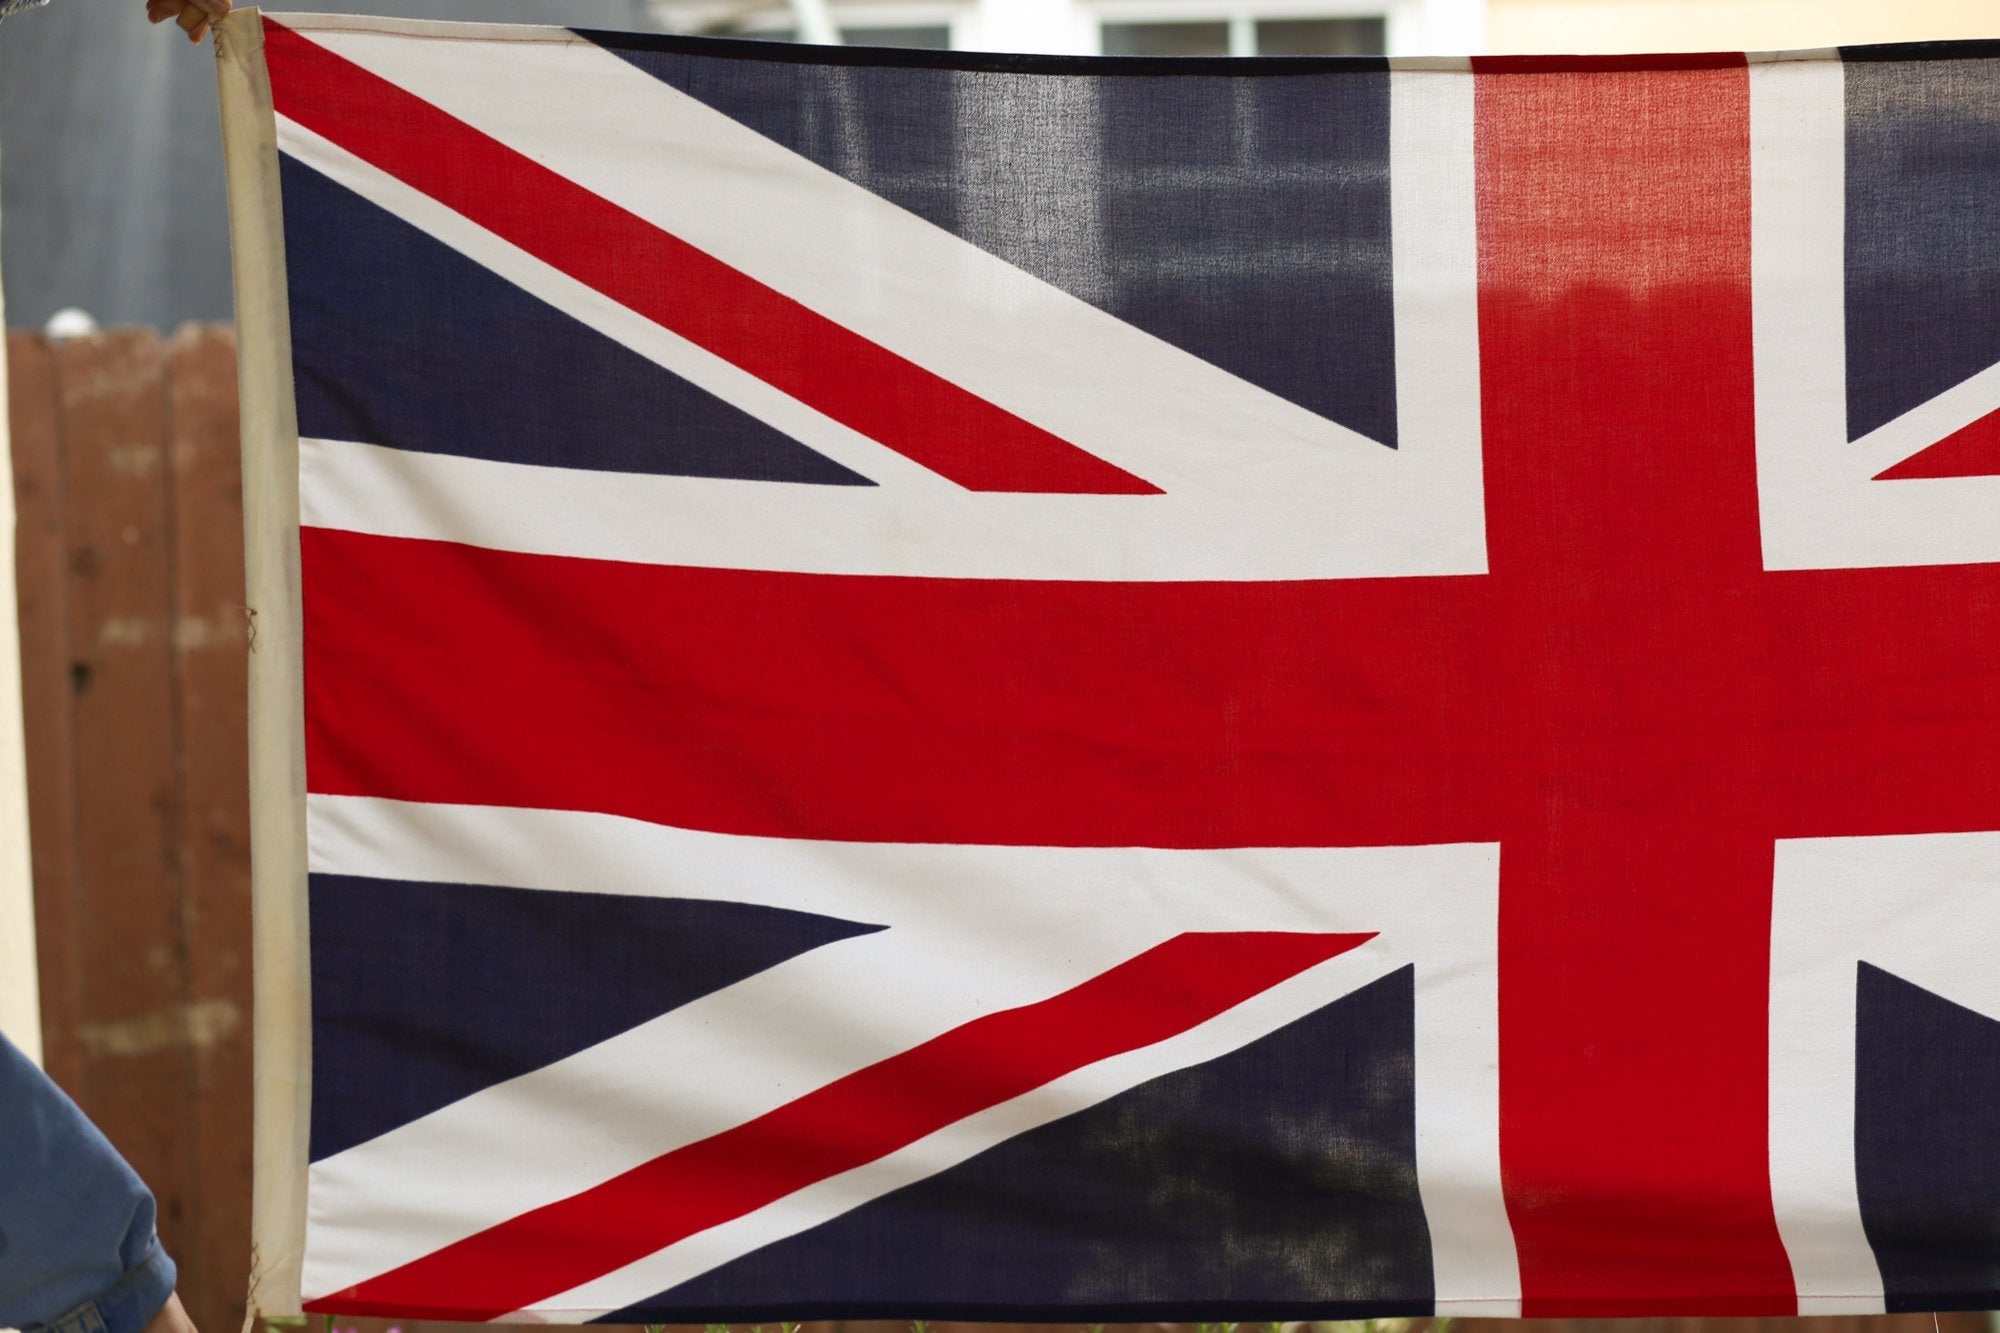 Vintage British Union Jack Flag - 3'x5'